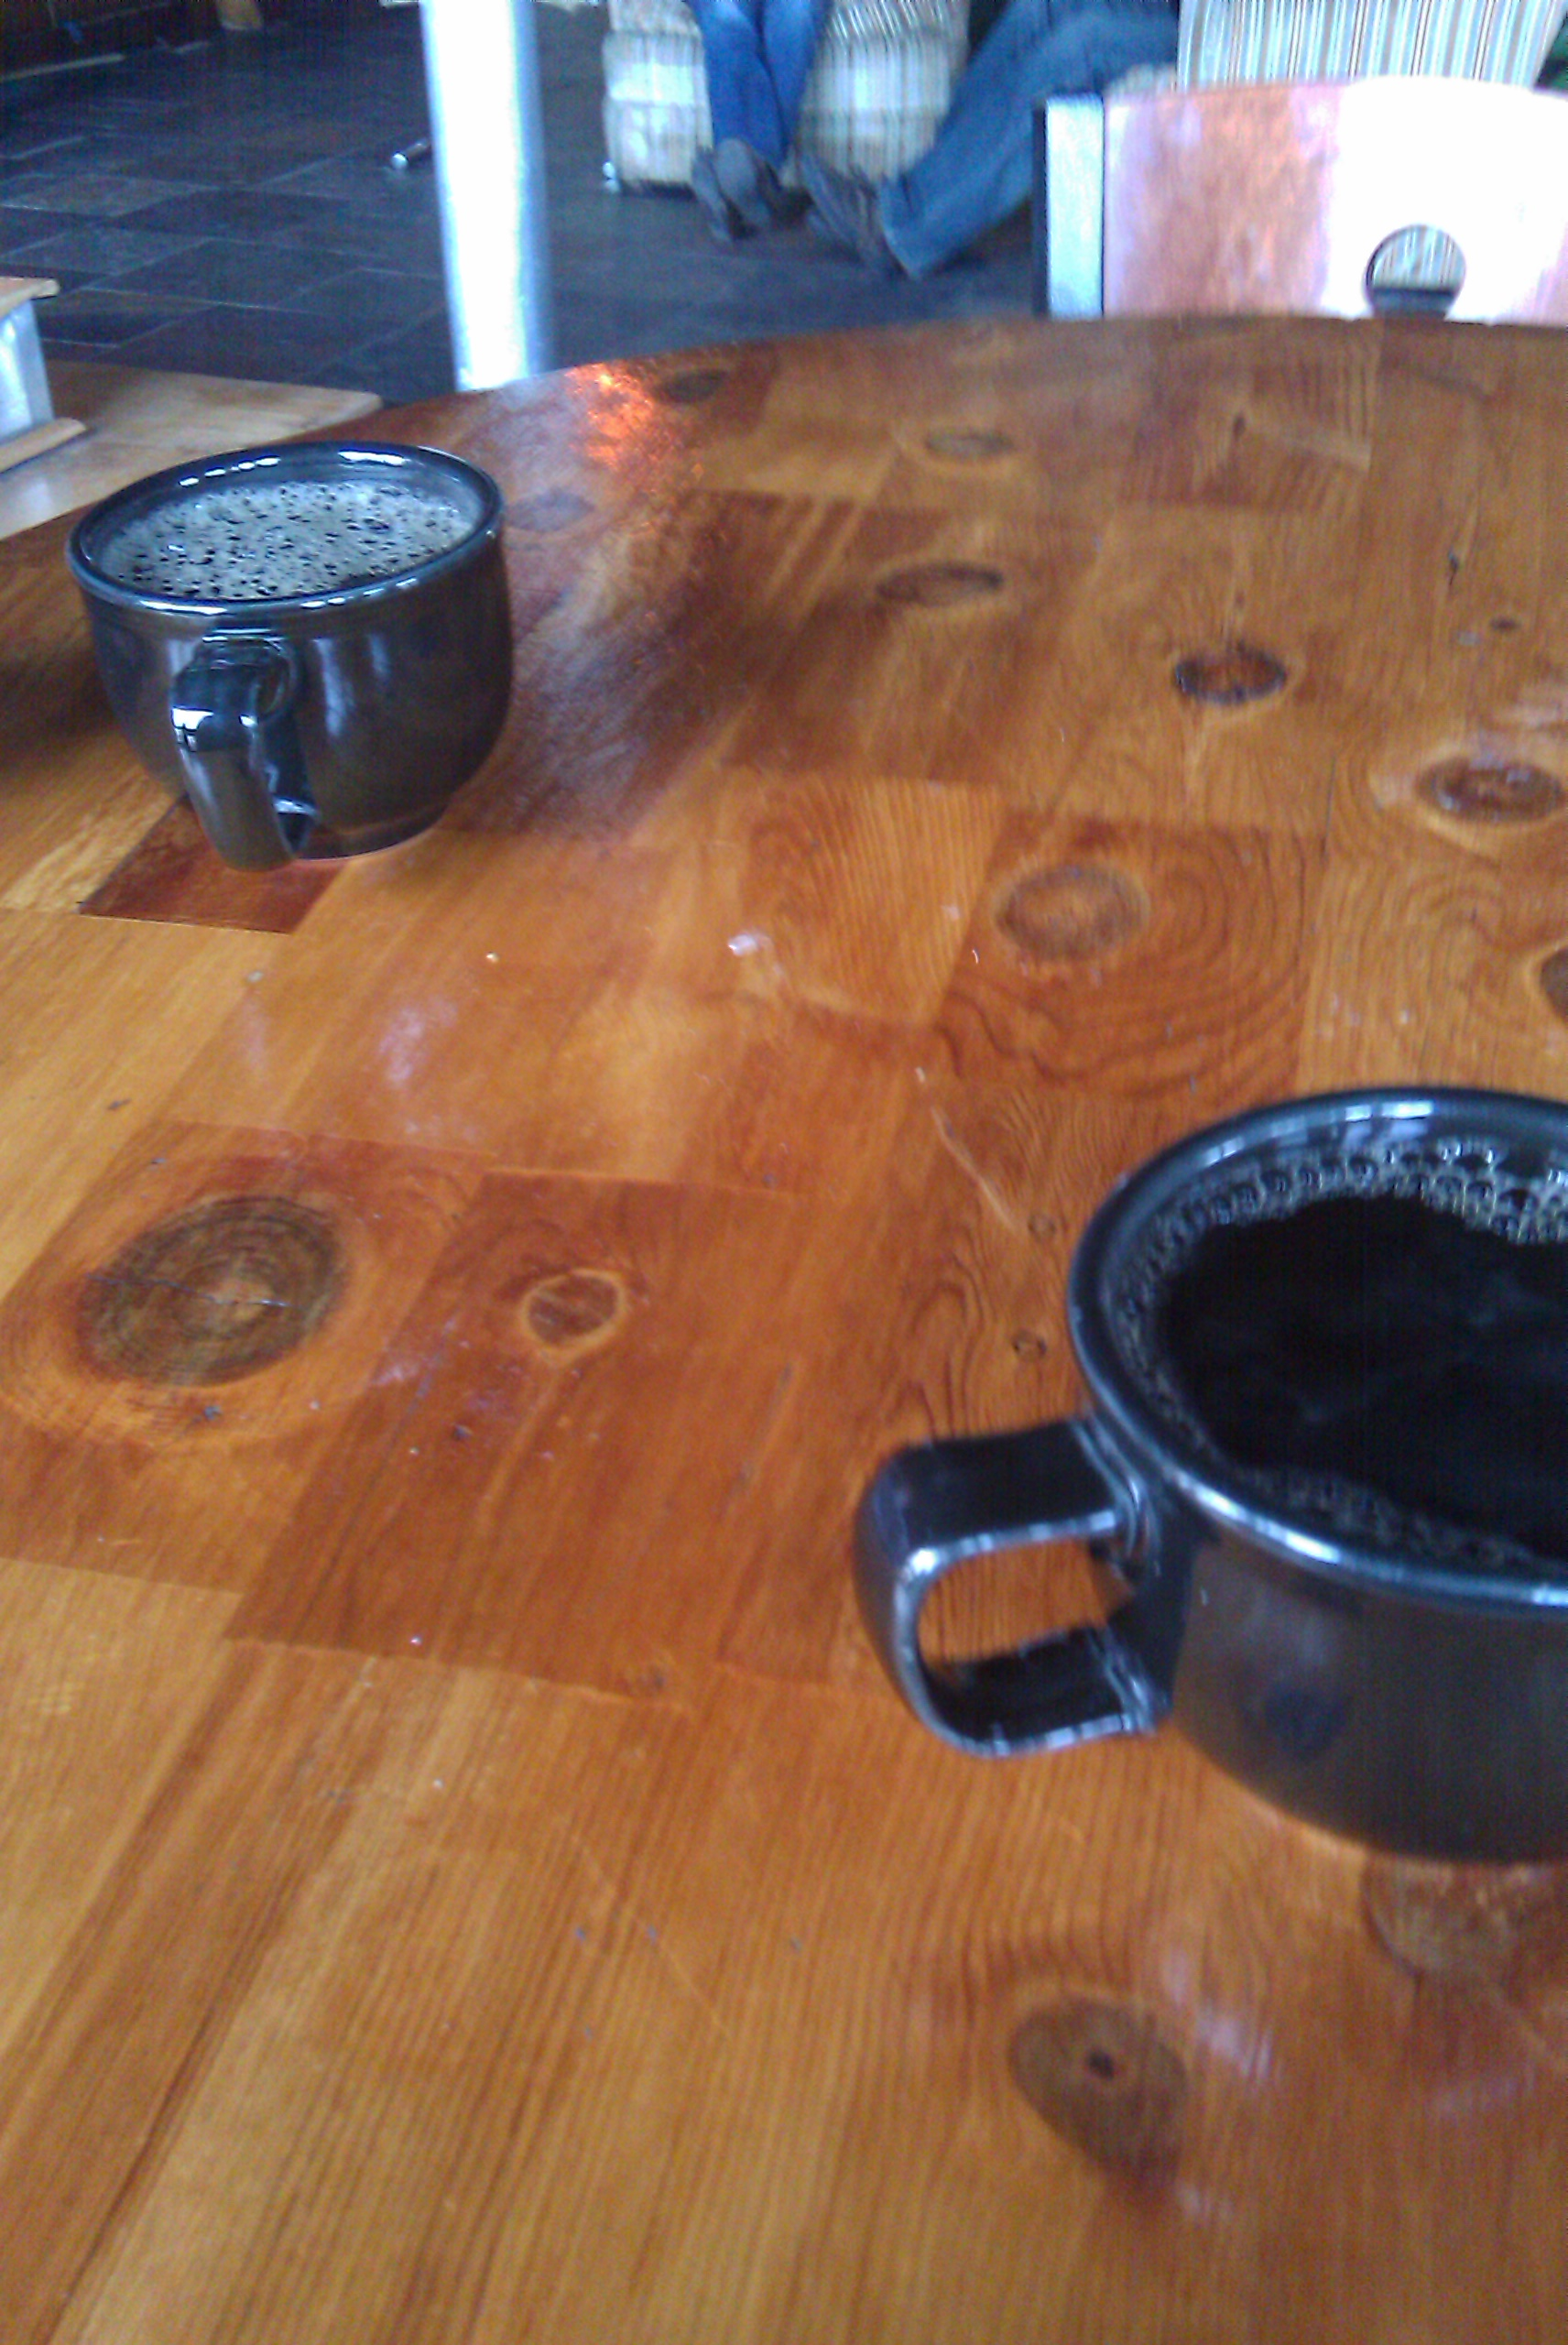 All the coffee